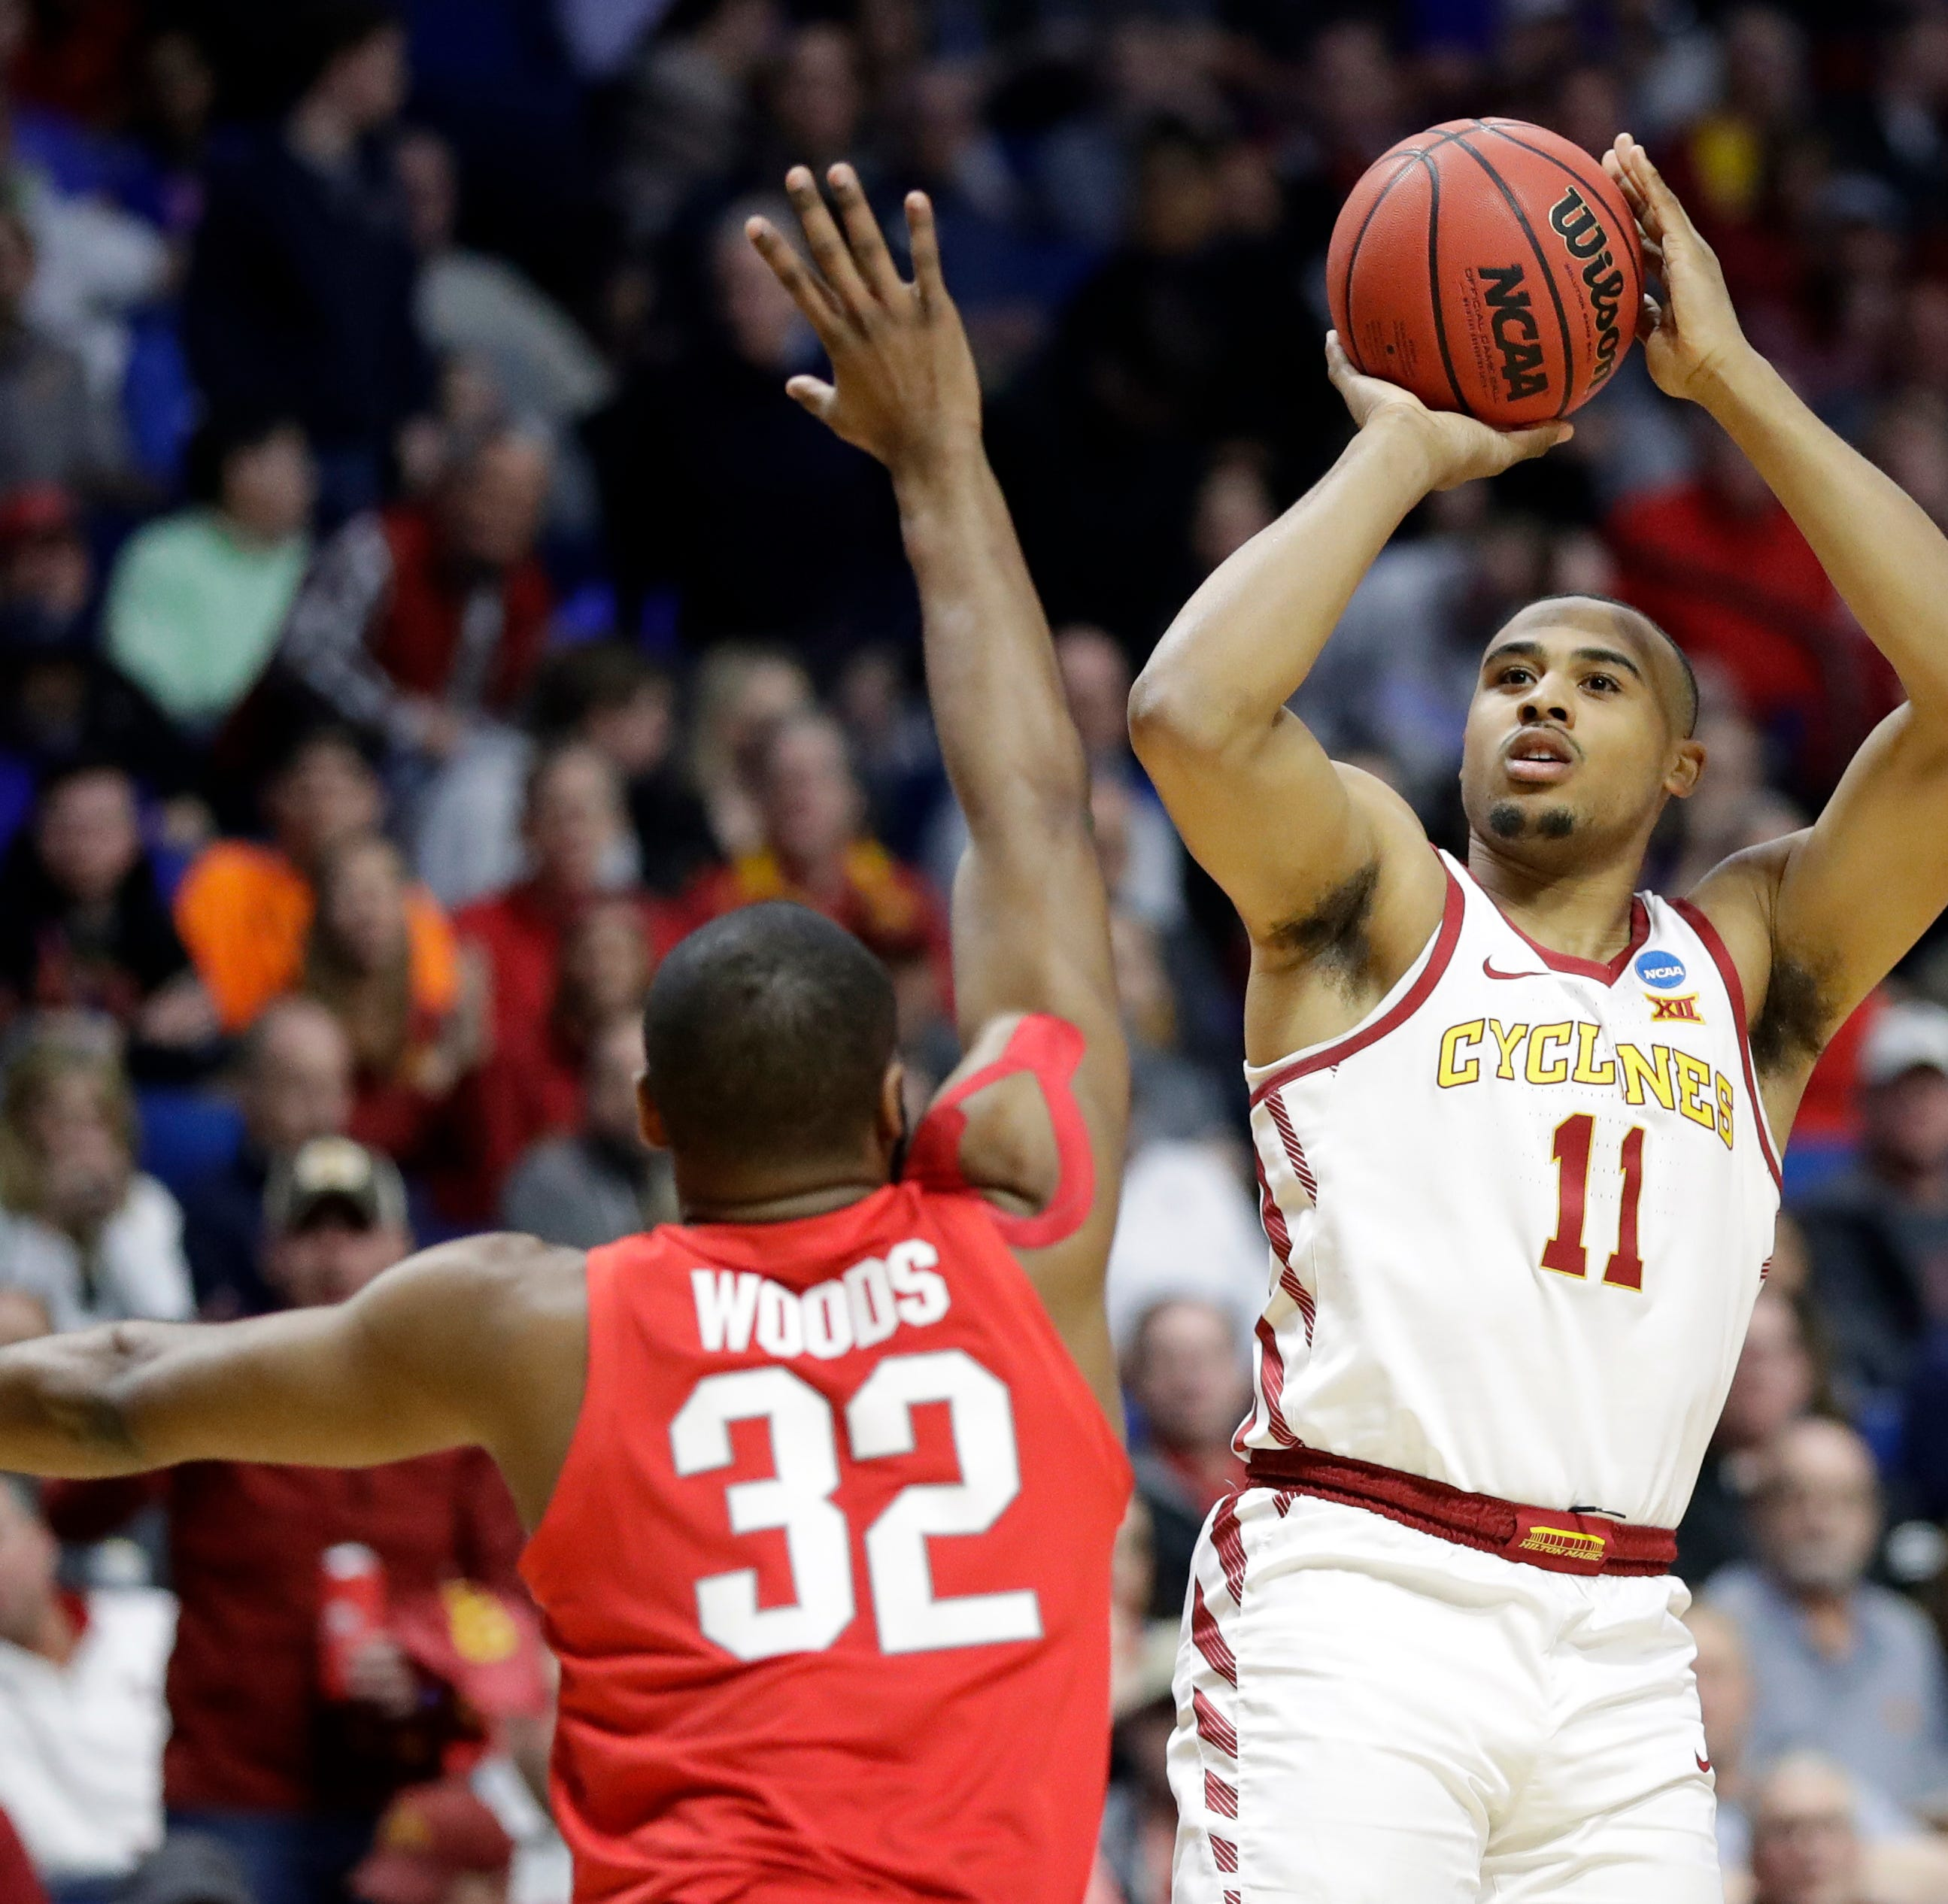 Does Iowa State basketball sensation Talen Horton-Tucker have an NBA draft promise?